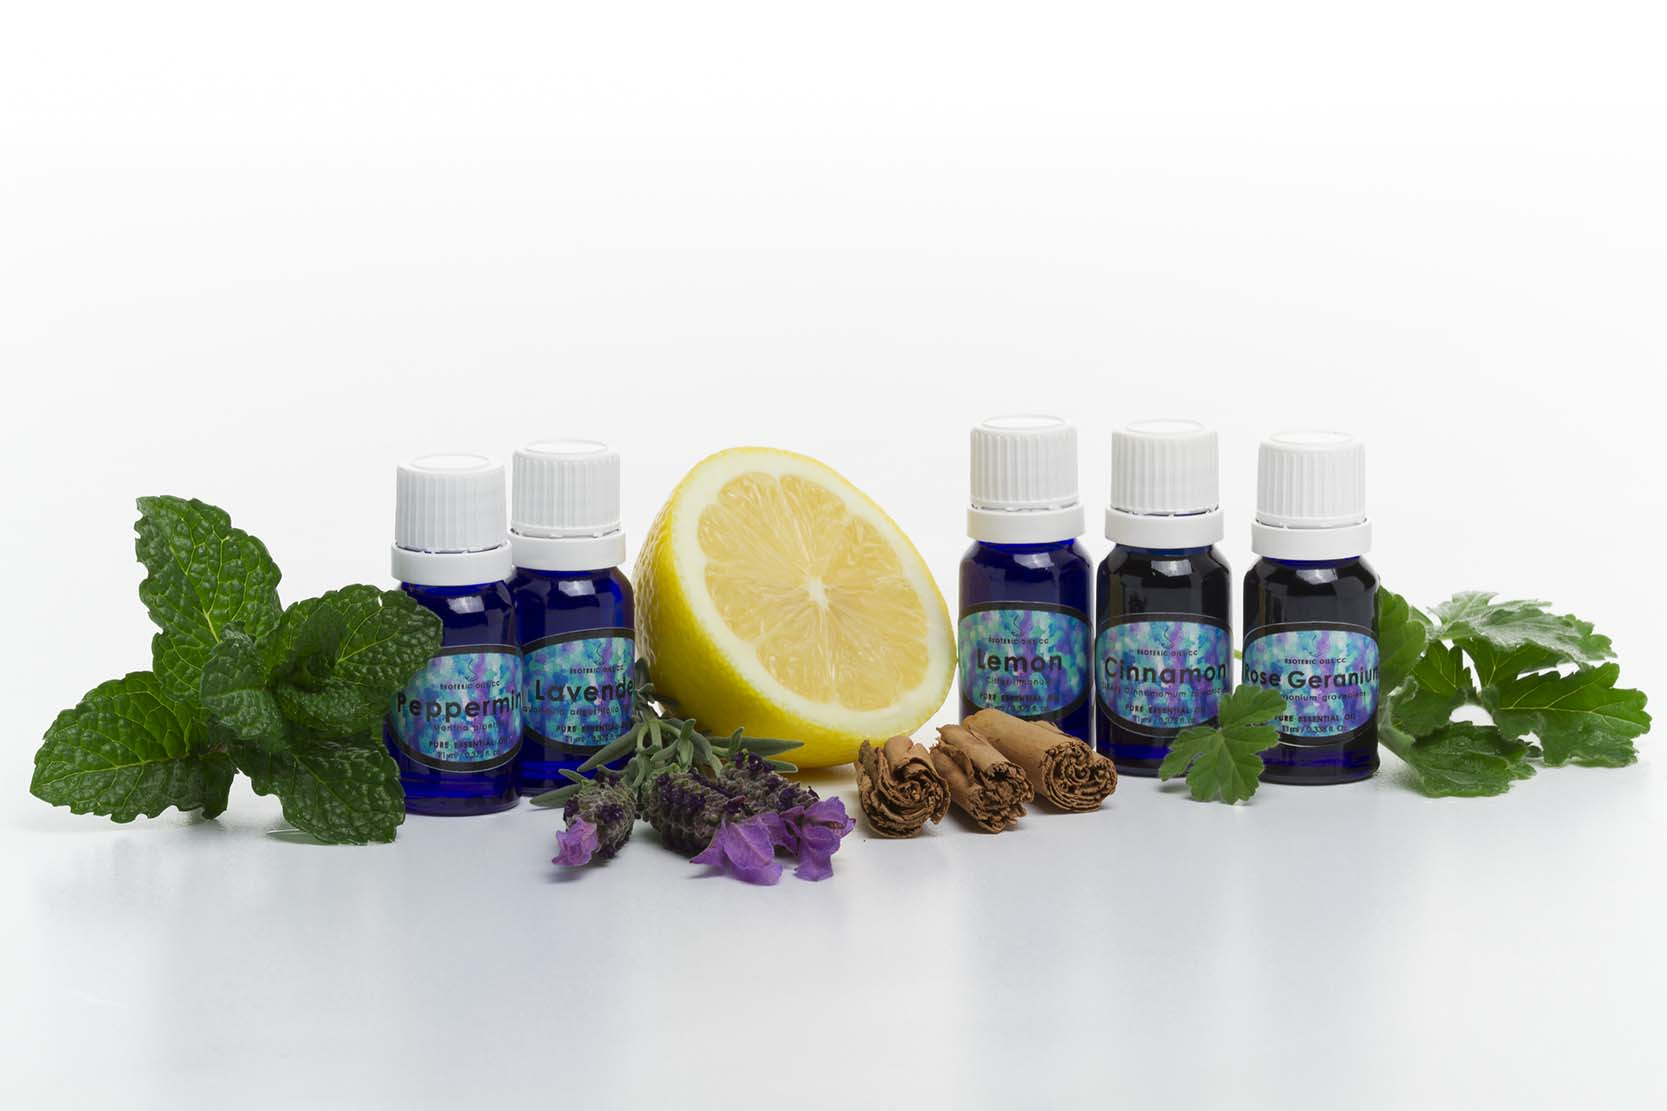 pure essential oils carrier oils pre-blended oil treatments